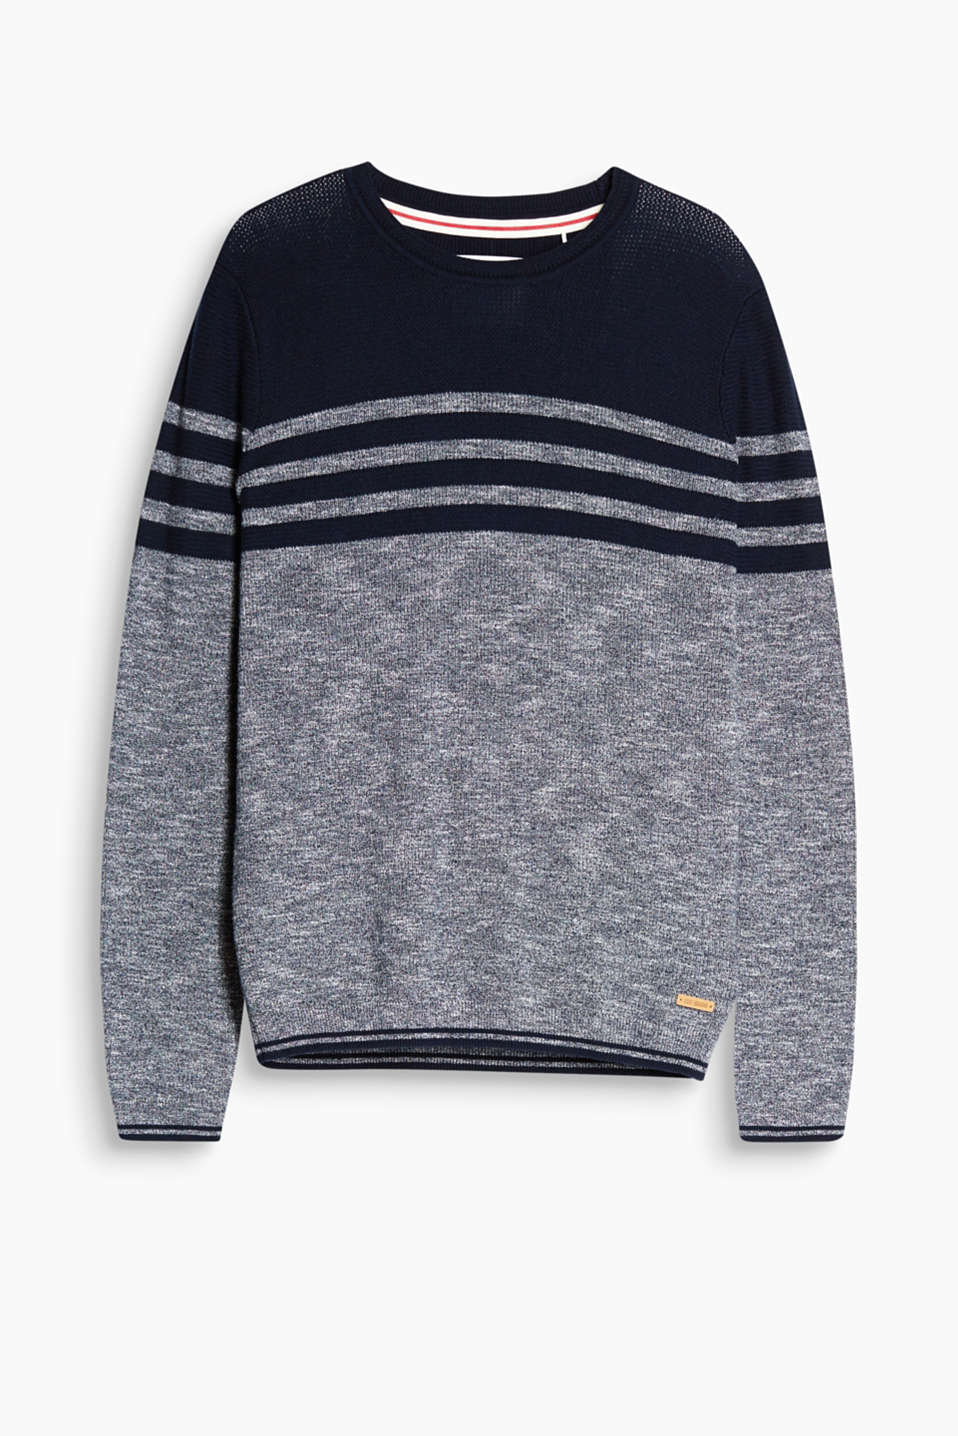 Sailor style! Alternating plain blocks of colour and stripes give this jumper its heartfelt vibe.